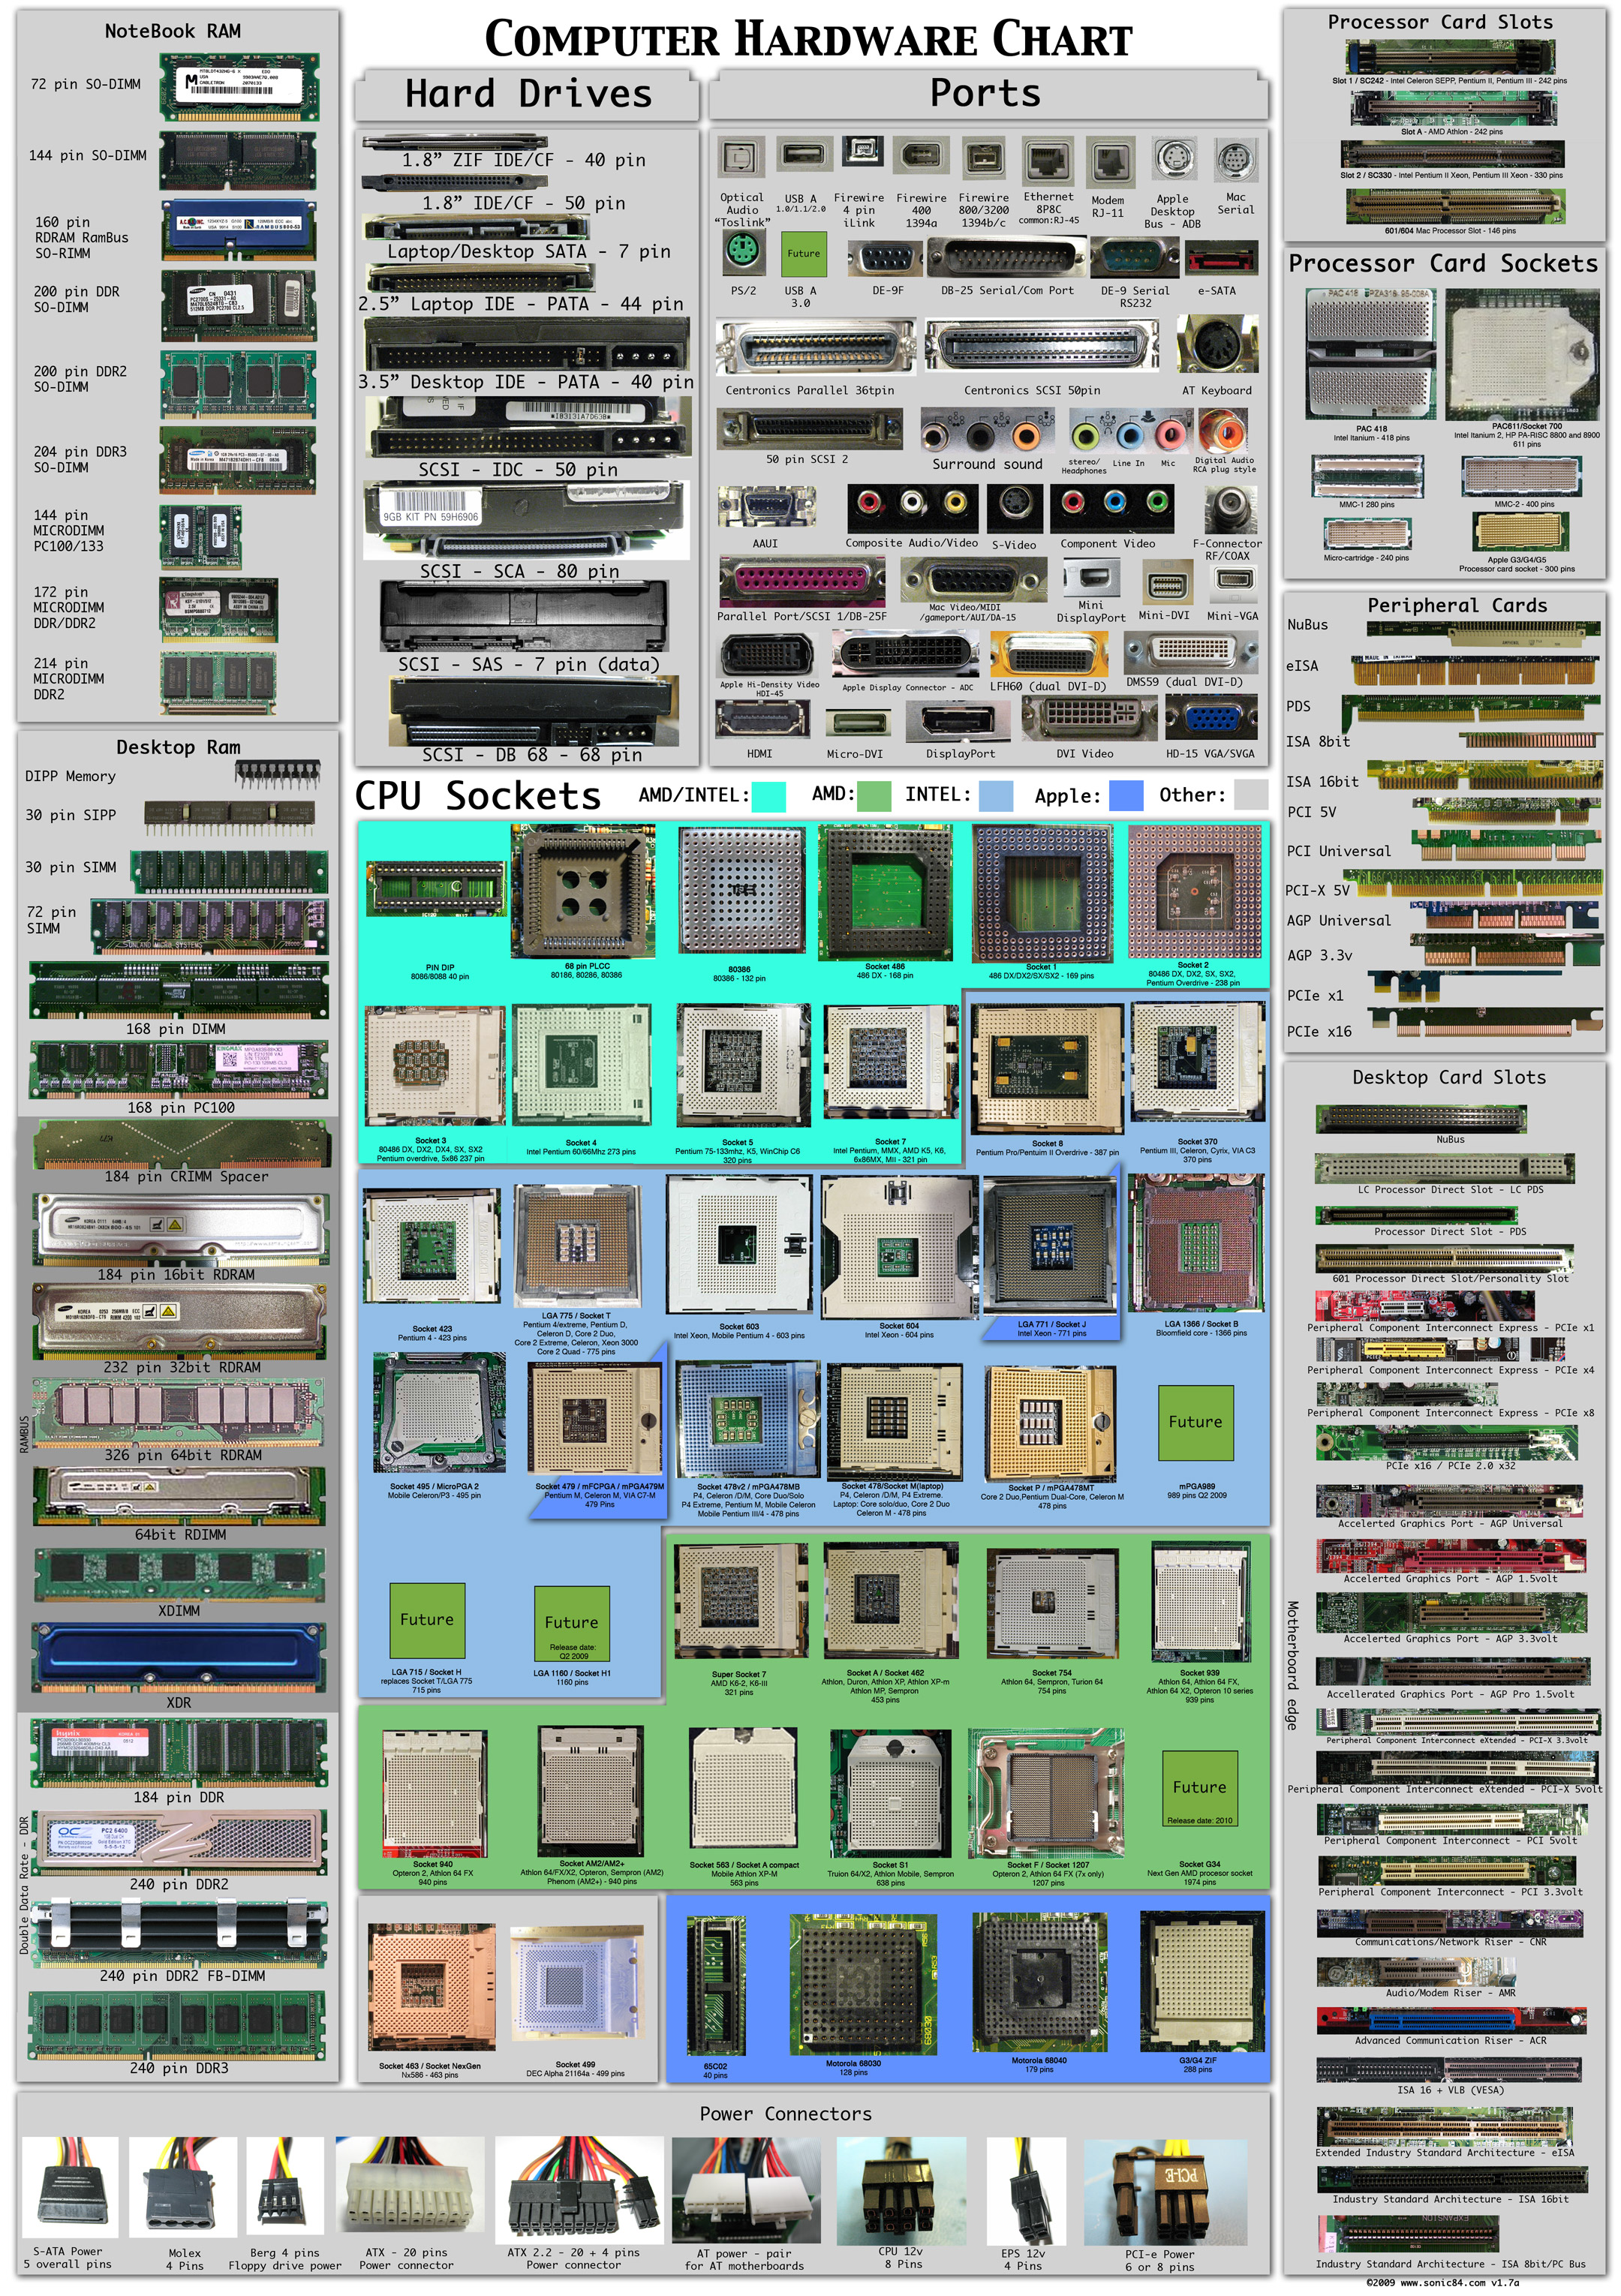 Computer Hardware chart. This has a lot of information about various hardware.